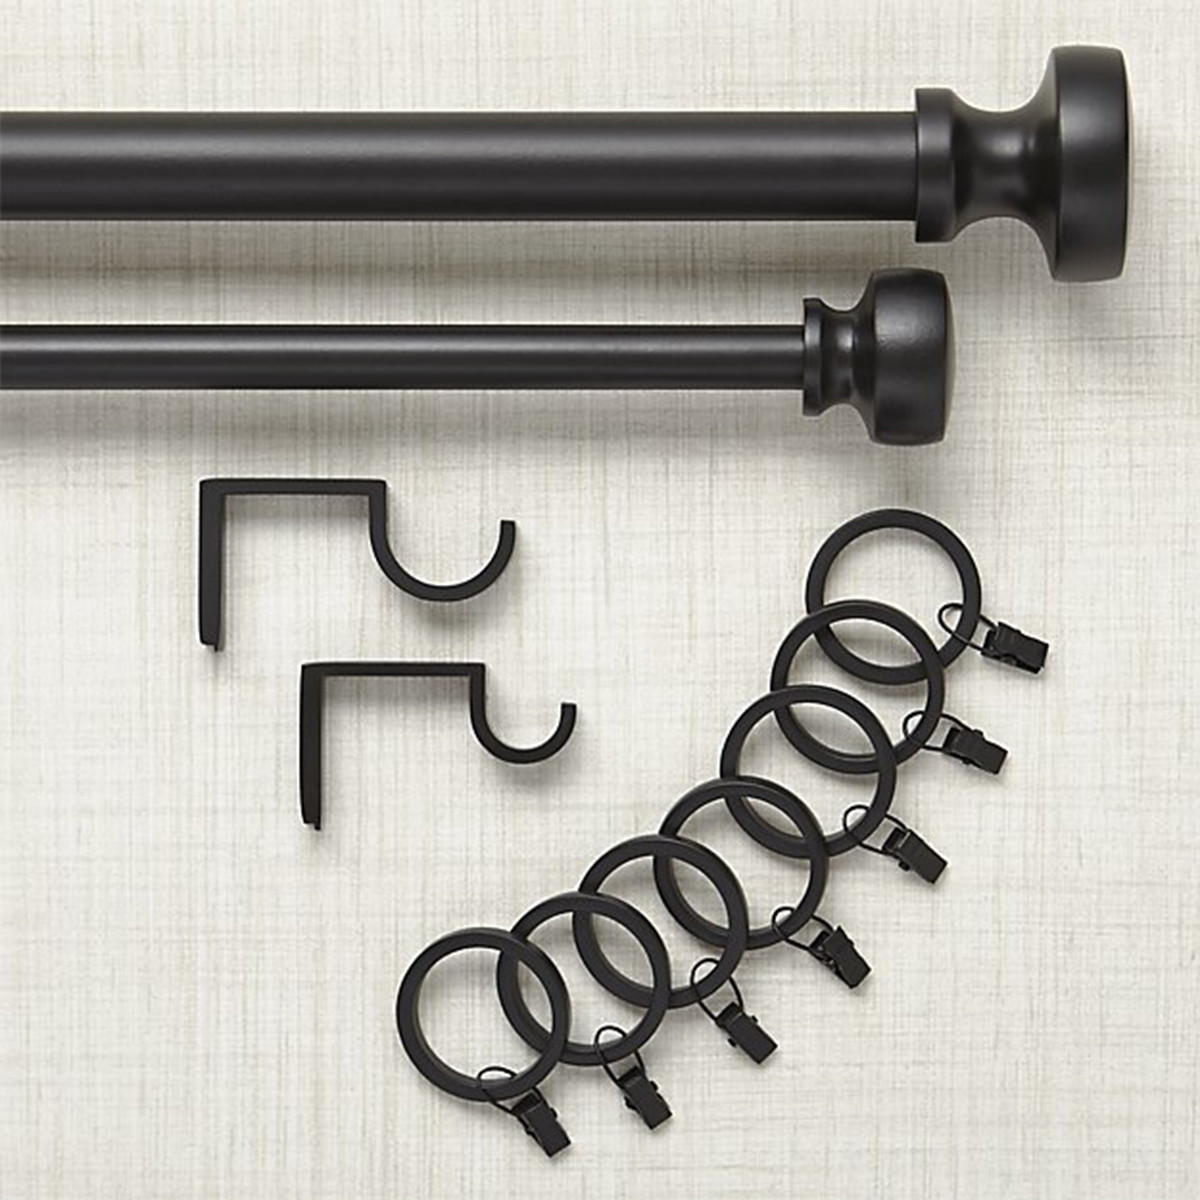 Telescopic rod, finials, brackets, and easy-glide rings, in a black finish photo